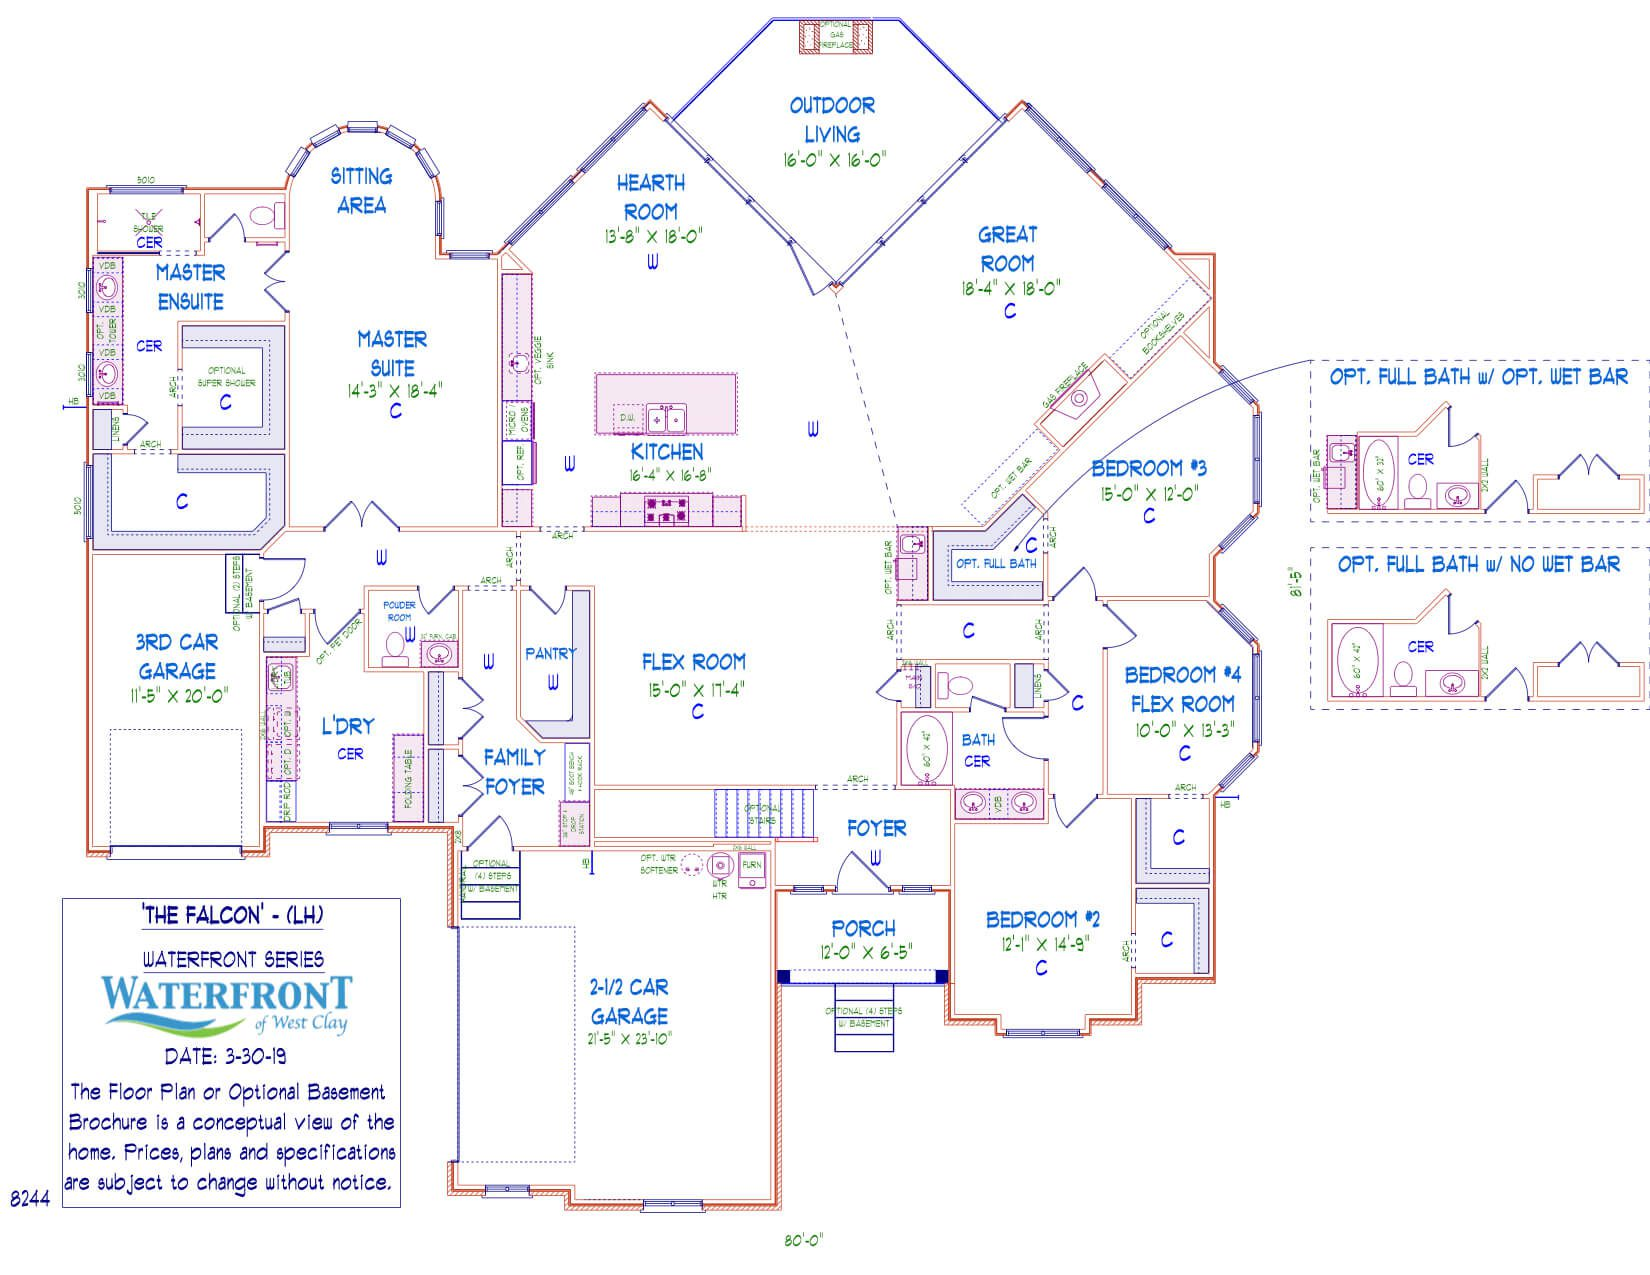 One-story, custom home floor plan layout featuring 3 car garage, 4 bedroom, large kitchen, and master suite